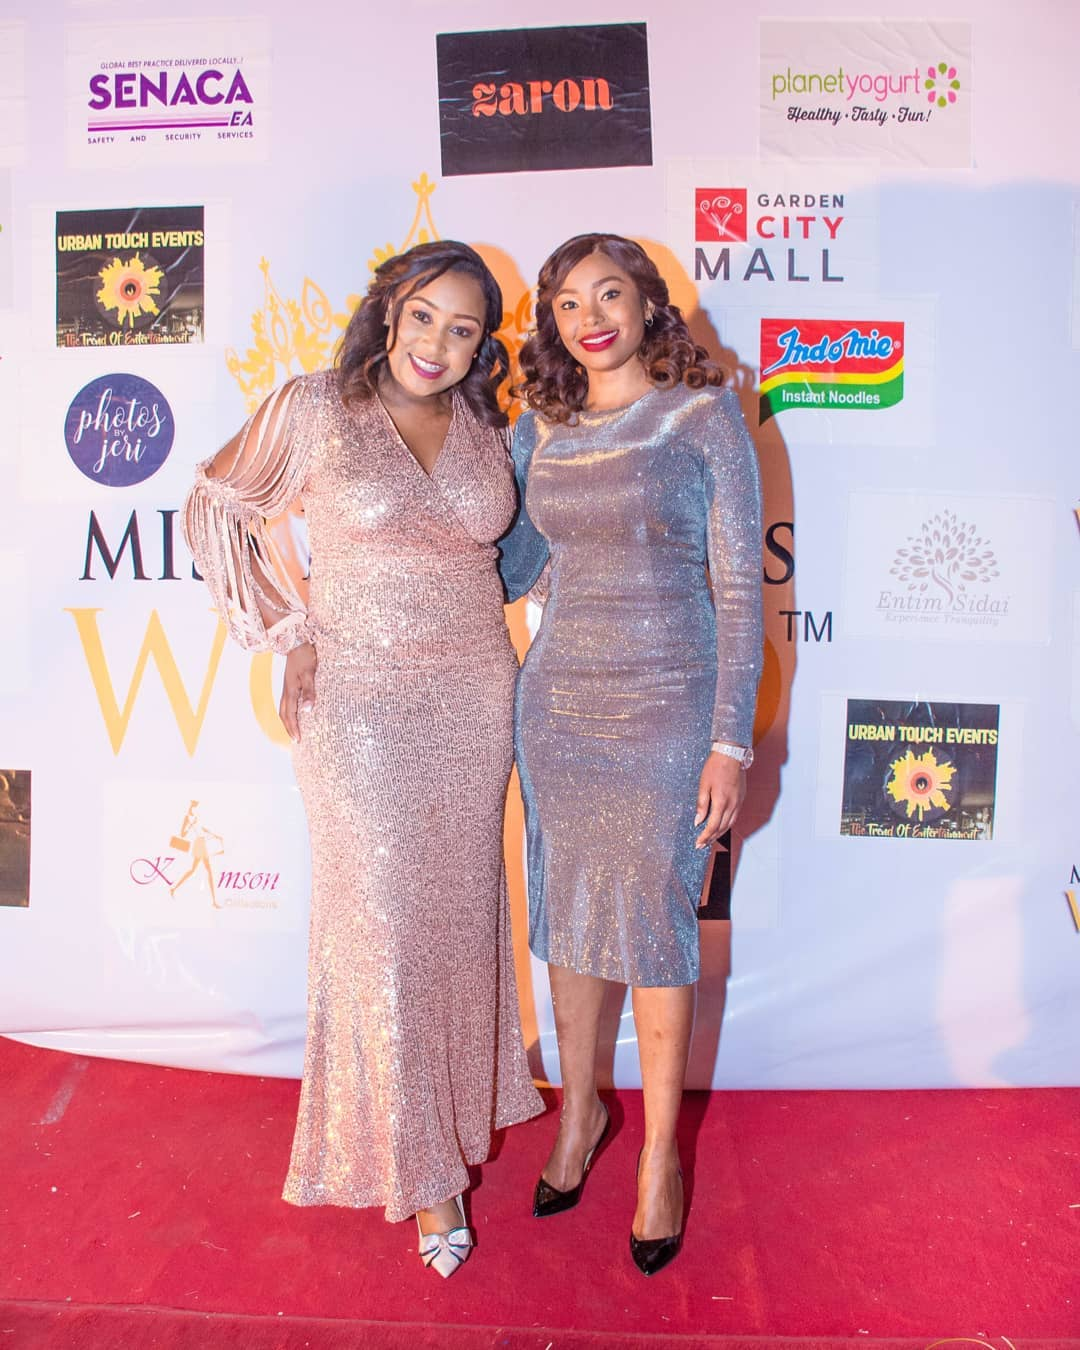 65531399 406925999922681 3990268092119170560 n - Fire him ASAP! Betty Kyallo's make-up fail gets fans talking